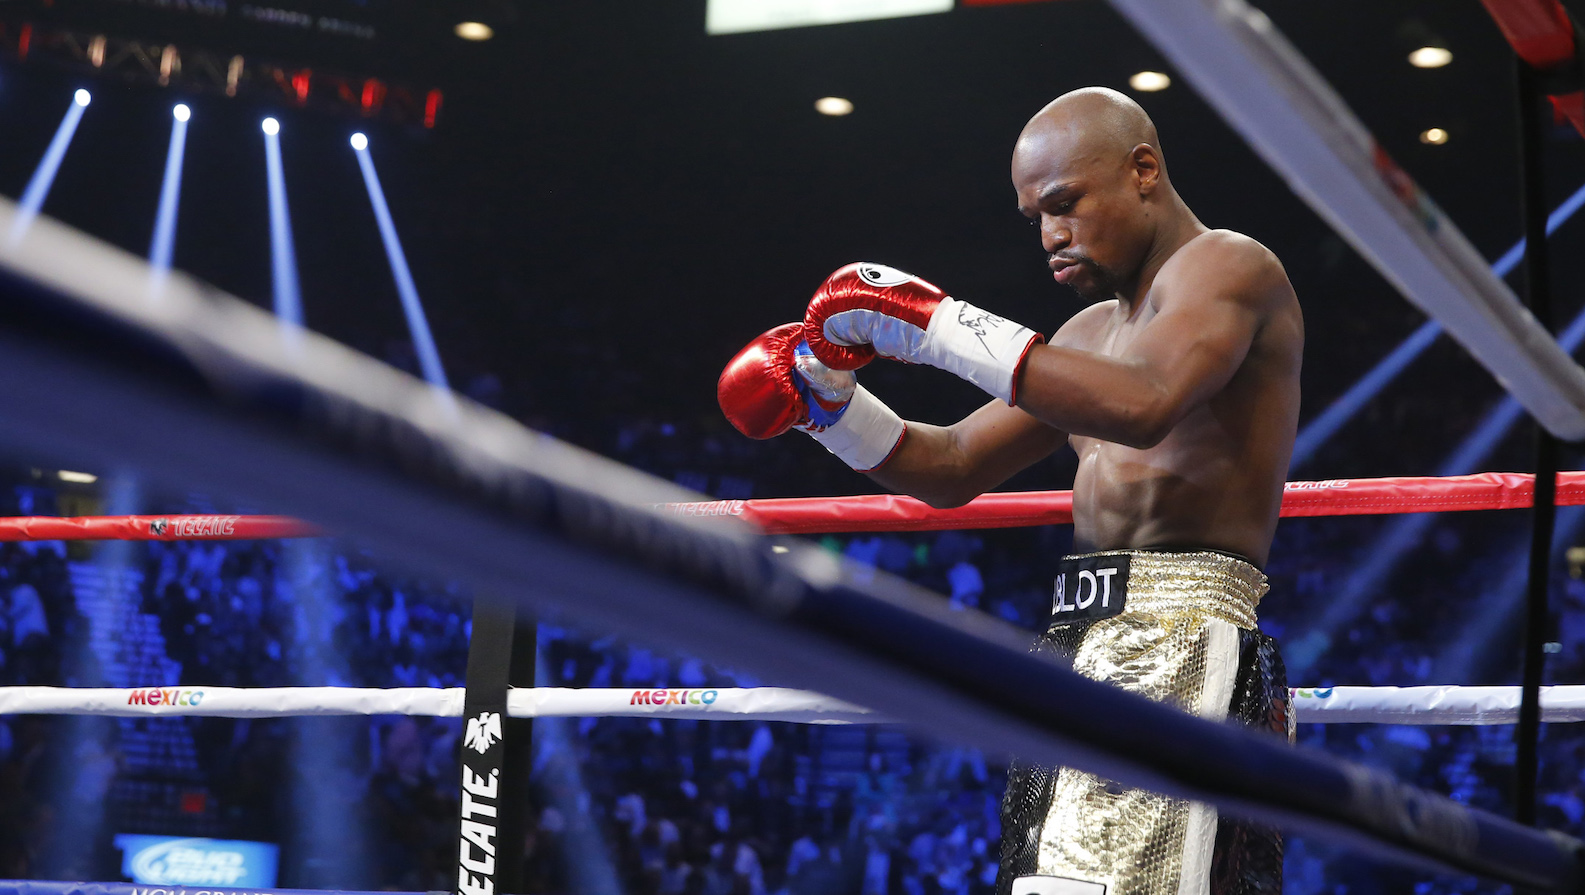 Floyd Mayweather Jr. of the U.S. arrives in the ring to face Manny Pacquiao of the Philippines in their welterweight WBO, WBC and WBA (Super) title fight in Las Vegas, Nevada, May 2, 2015.    REUTERS/Steve Marcus - RTX1BAMU